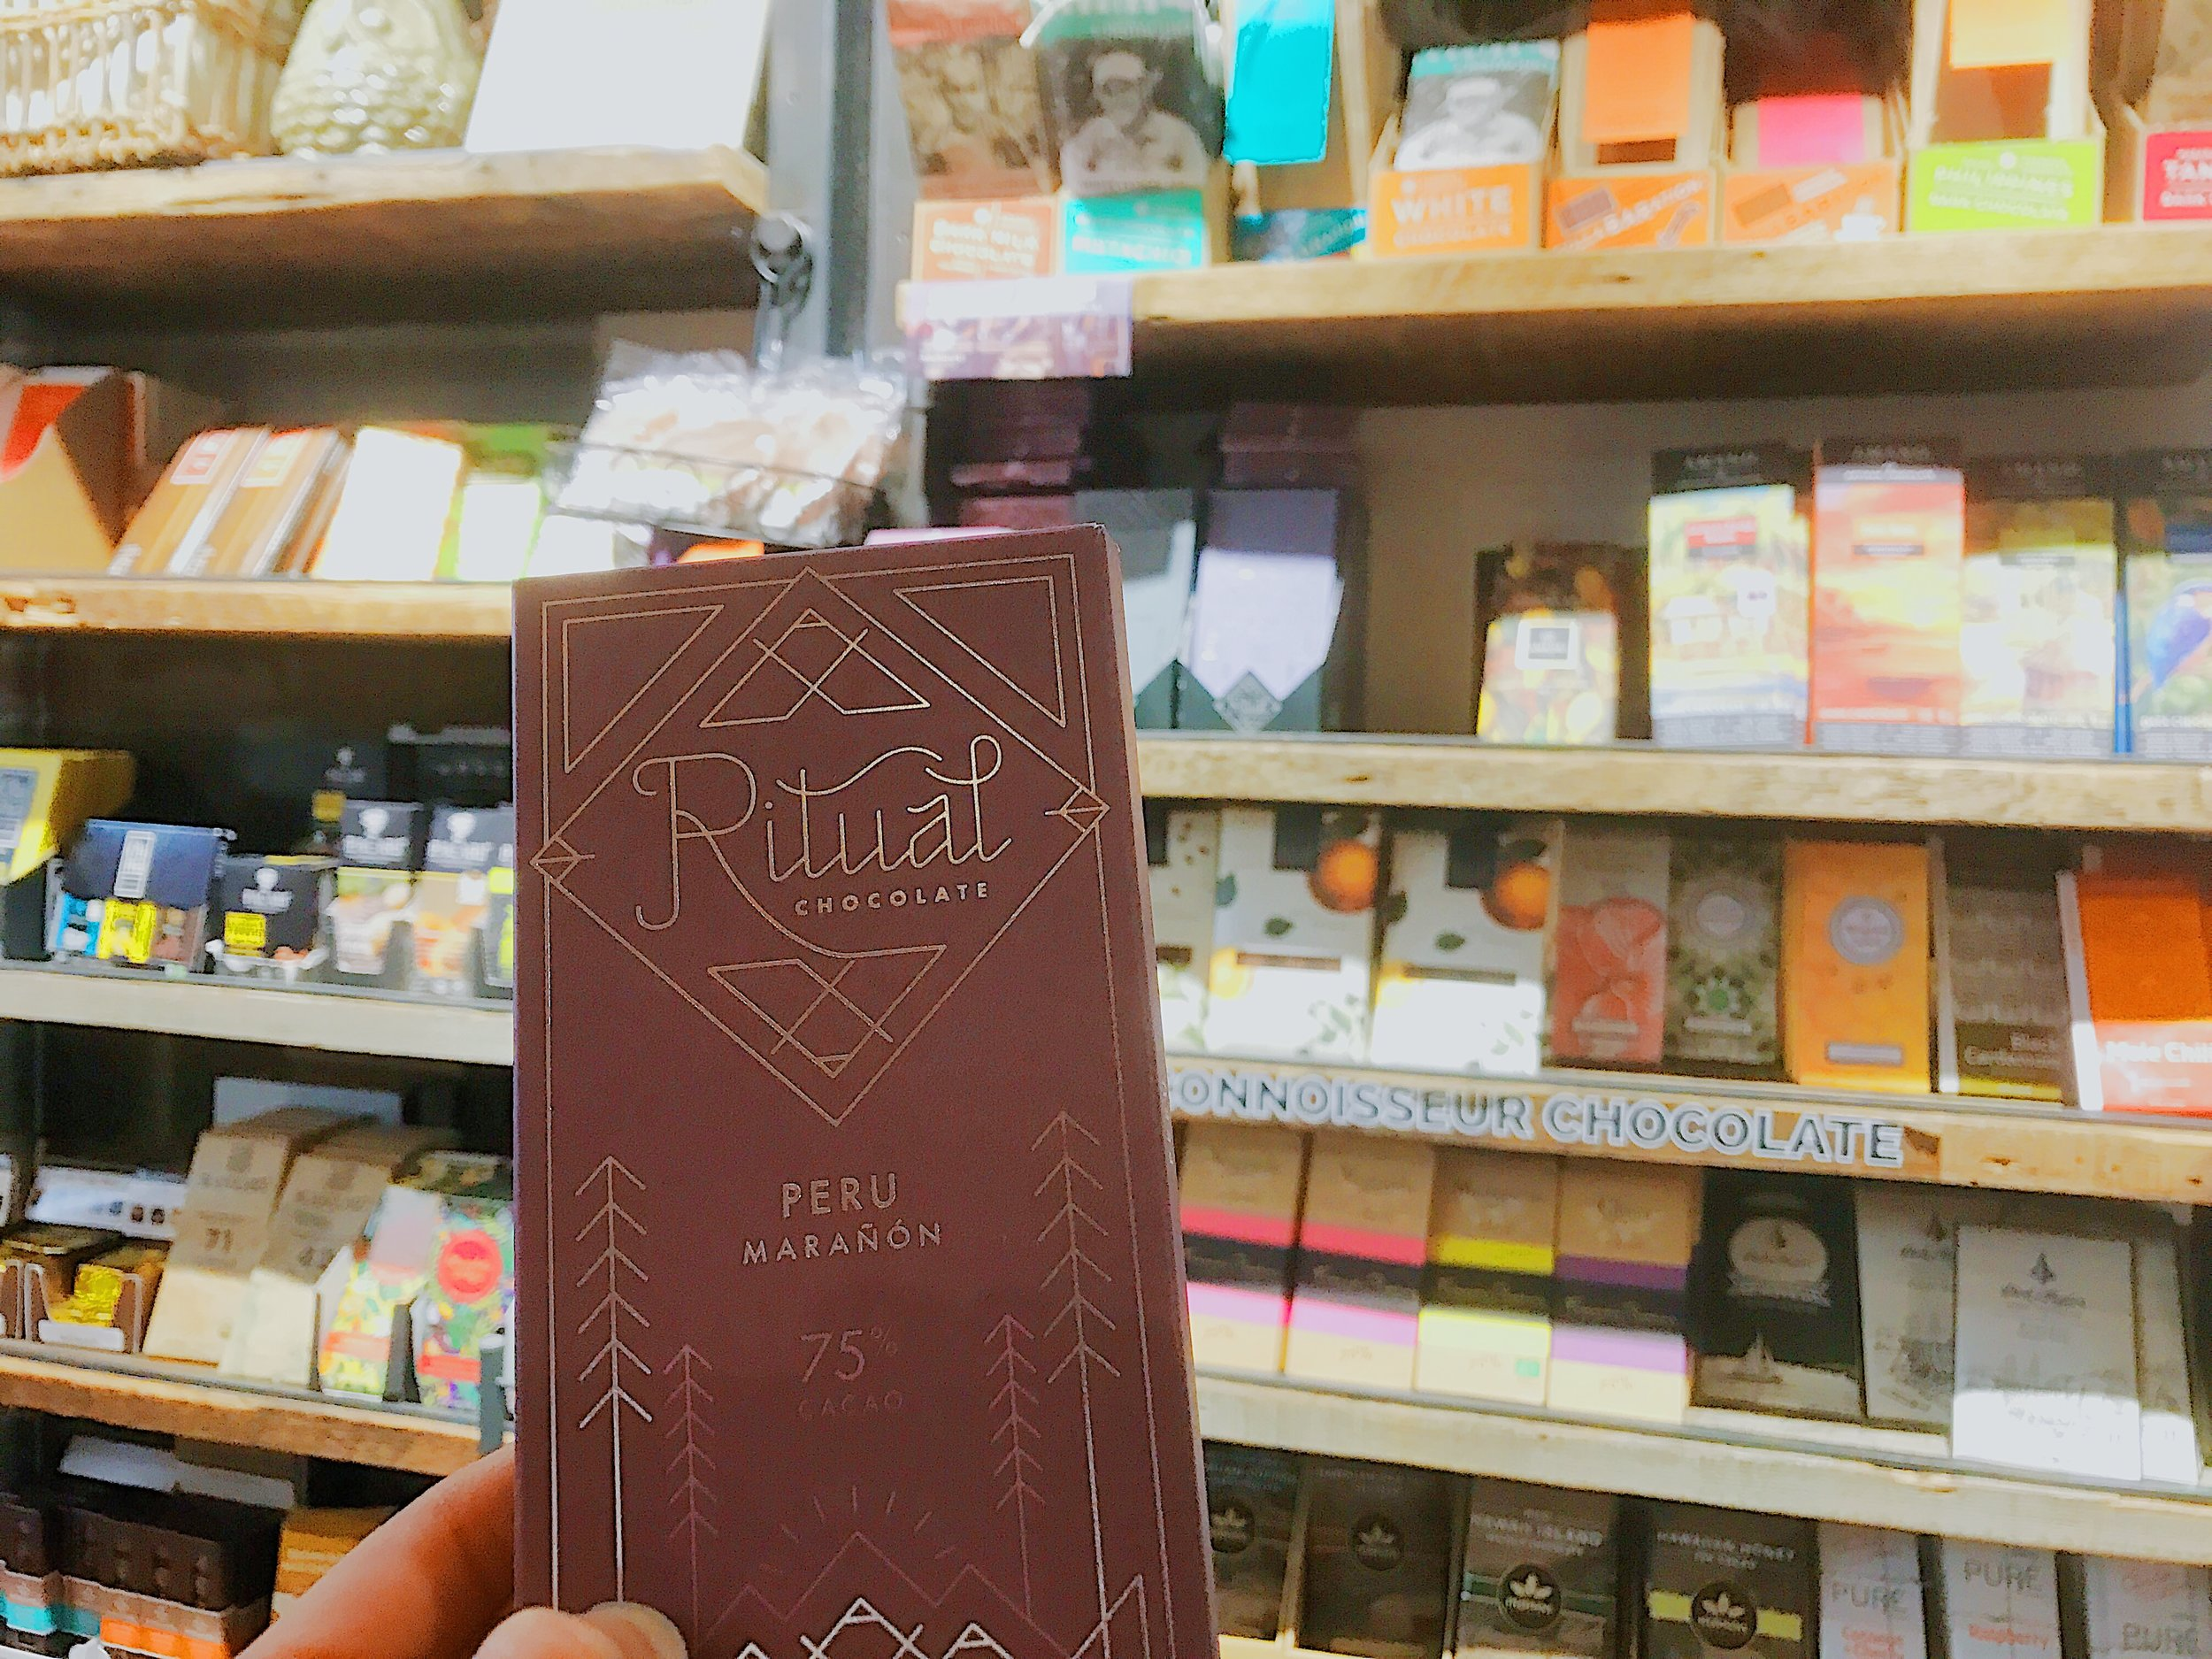 Now I'm off to replenish my chocolate stash at Chelsea Market Baskets, which has an impressive selection of hard-to-find brands. I'm loading up on  Ritual Chocolate  and  Amano Chocolate , two of the best makers in the country.